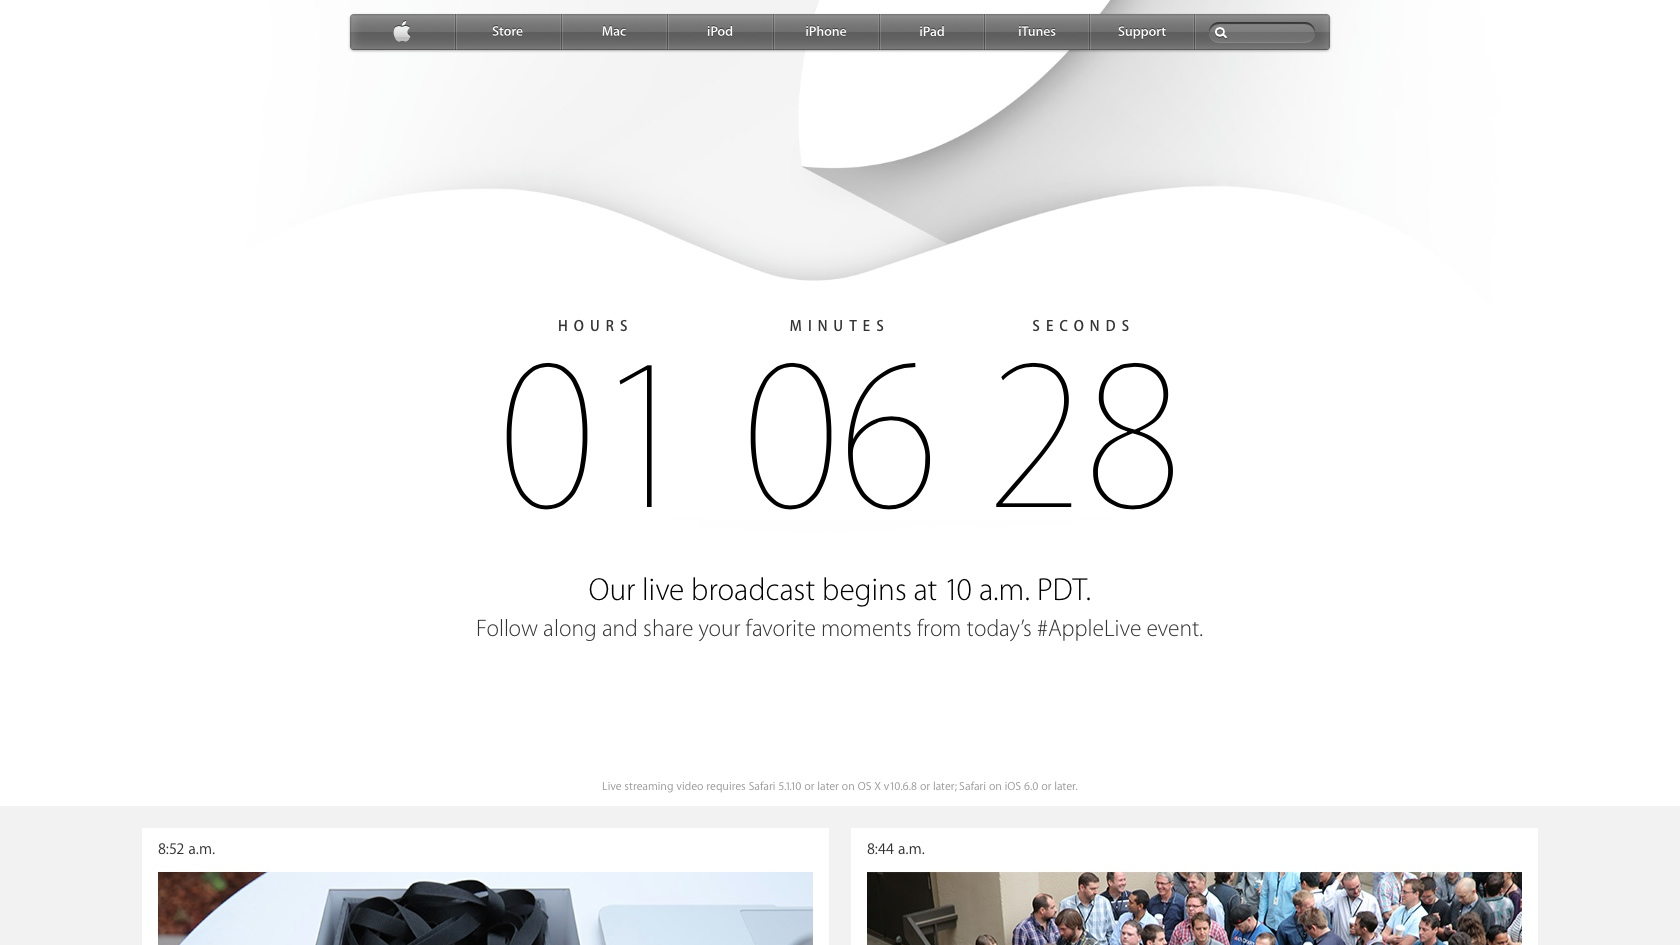 Apple Special Event 20140909 on Appledotcom